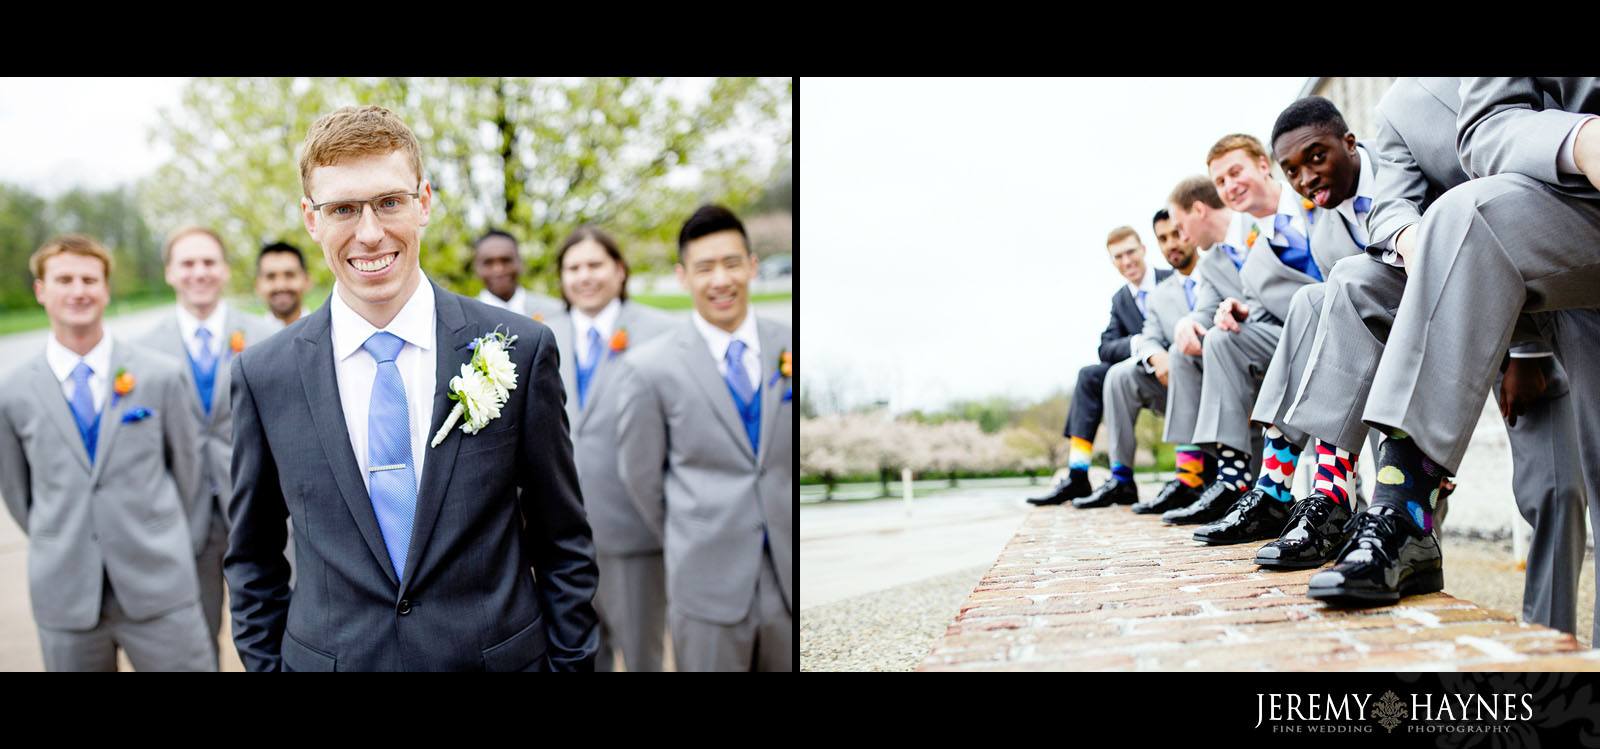 outside-groomsmen-funny-pictures-jeremy-haynes-photography.jpg